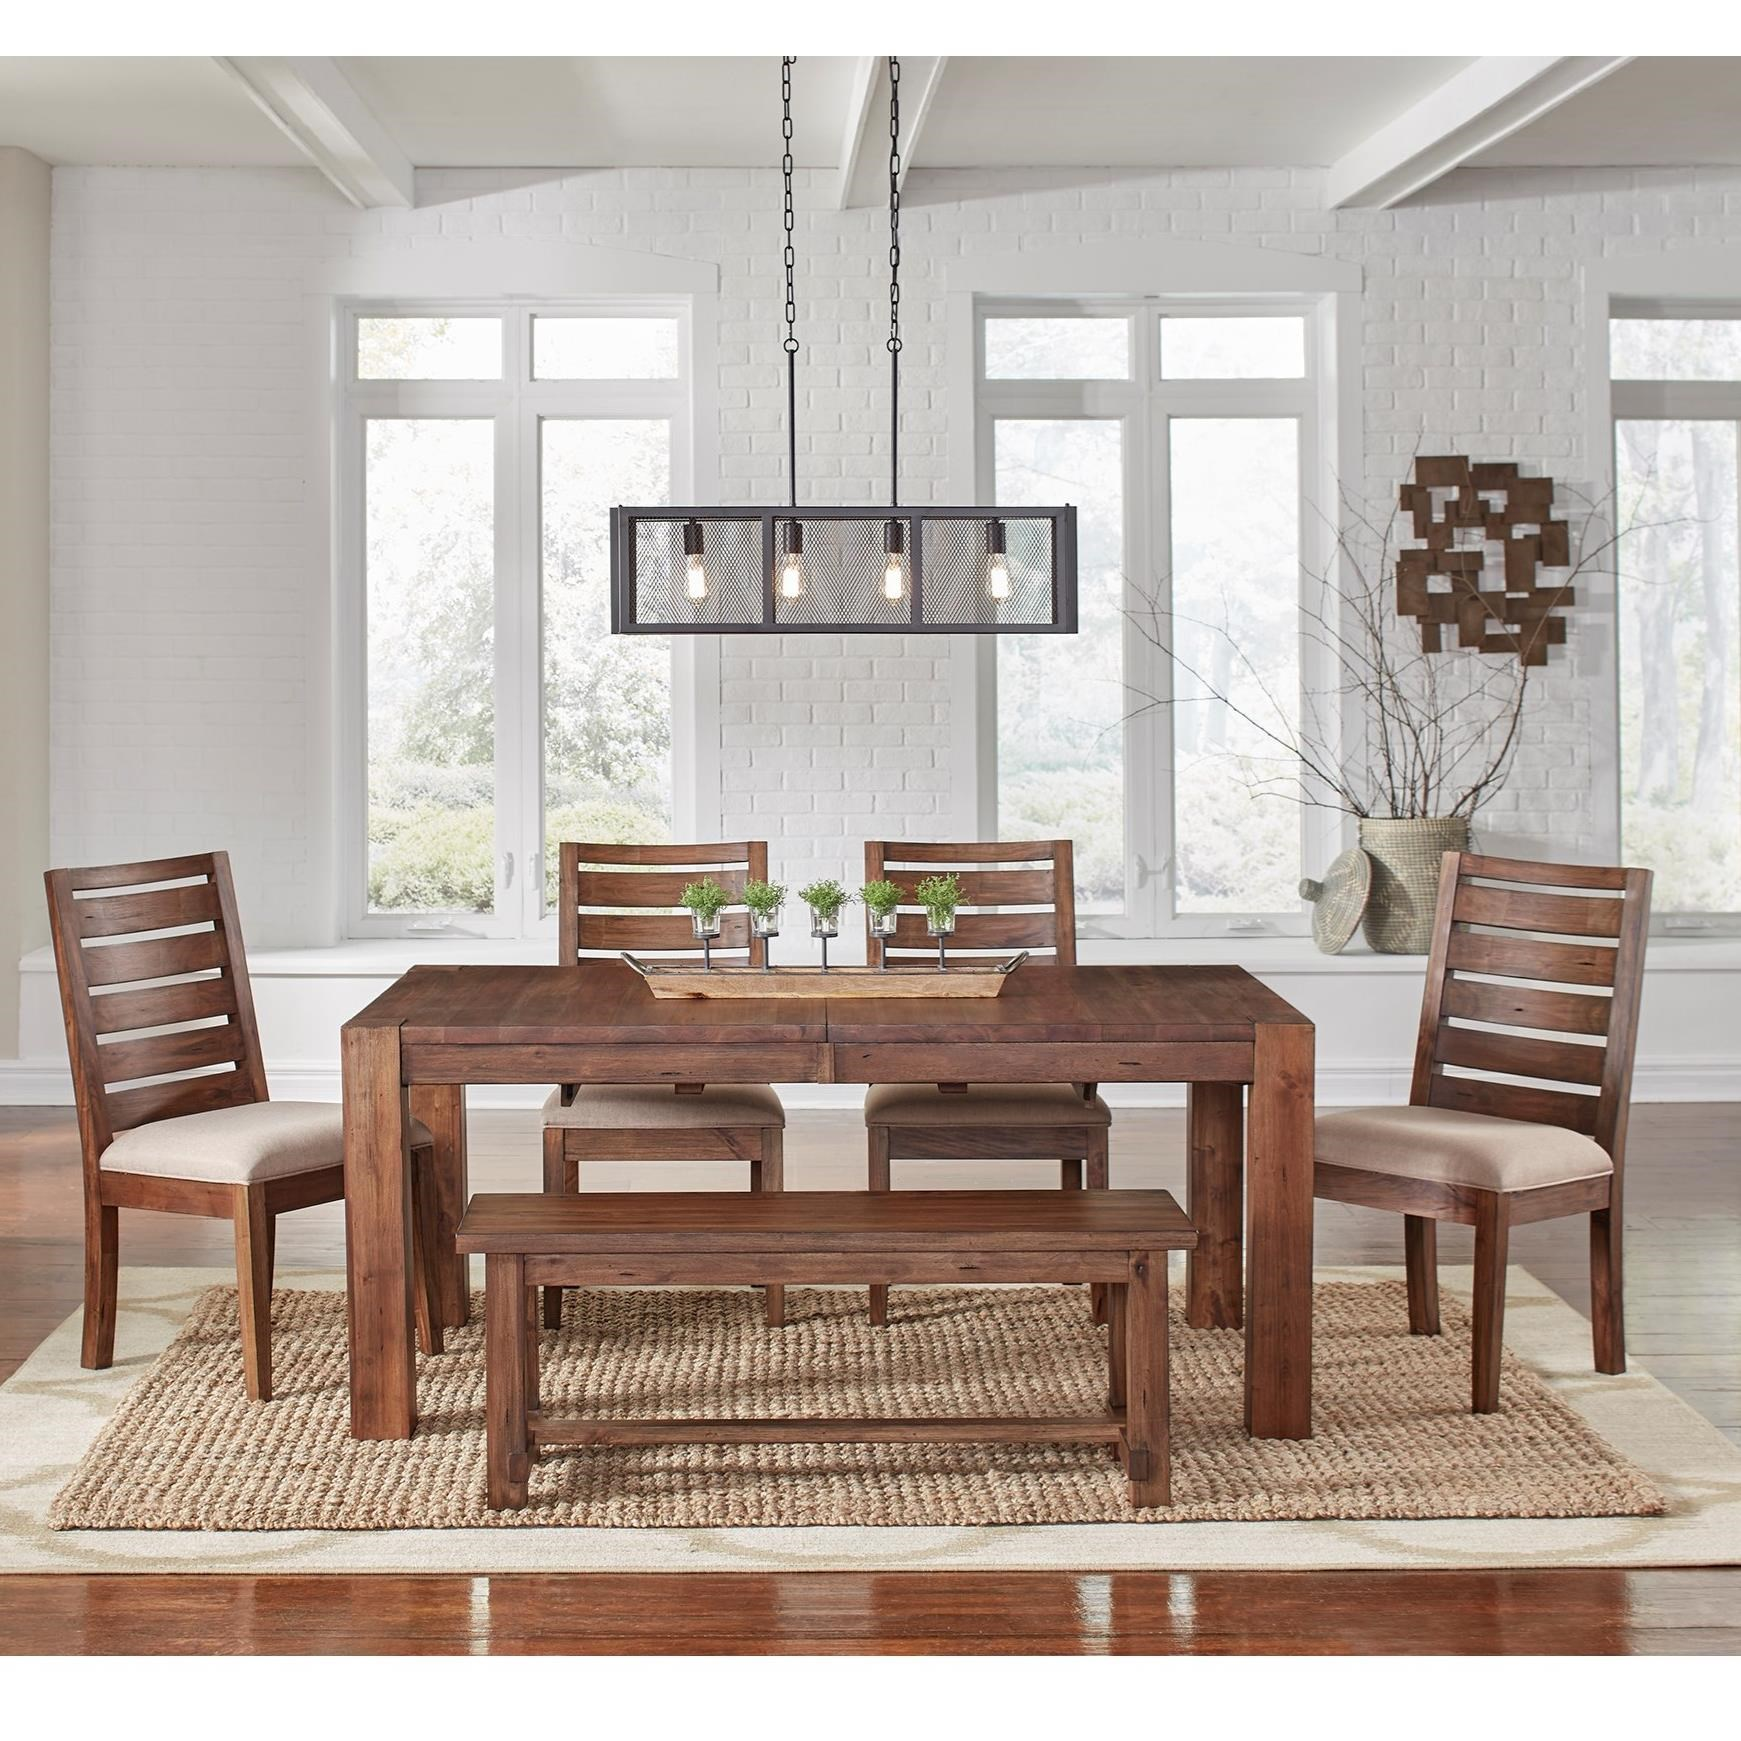 AAmerica Anacortes 6 Piece Dining Set - Item Number: ANA-SM-6-34-0+4x2-45-K+2-96-K